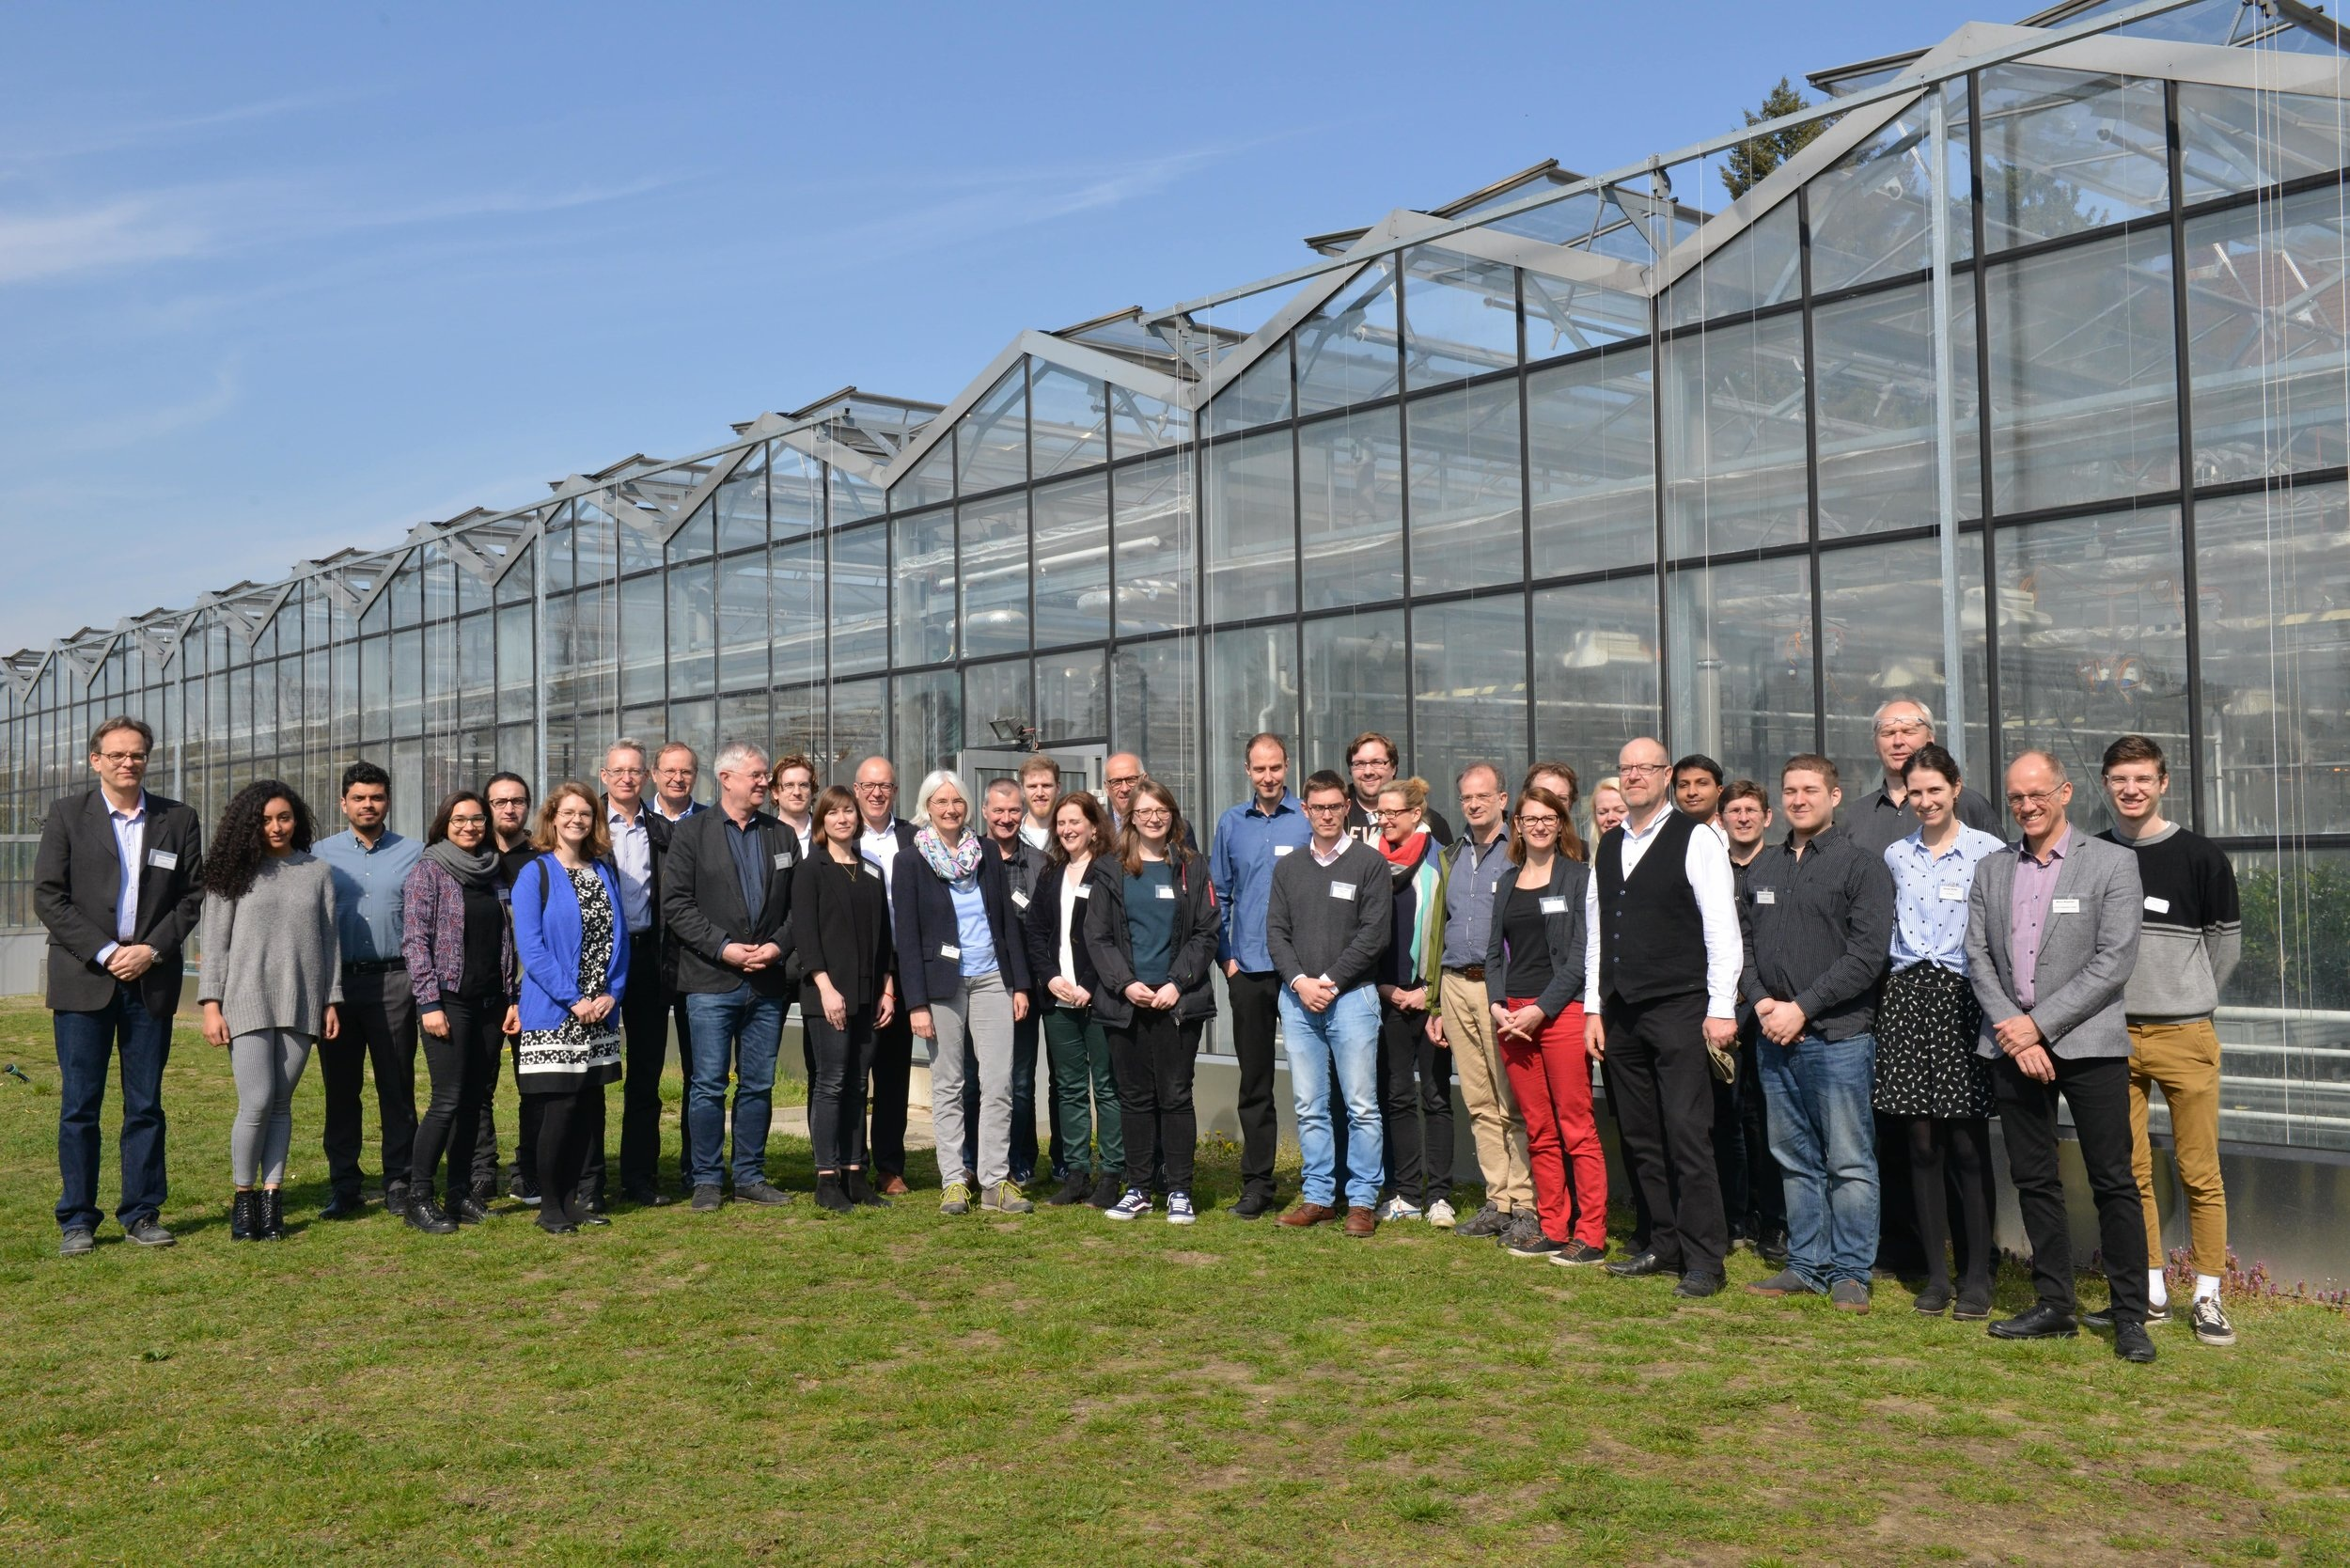 CUBES Circle Workshop - April 3-5 2019 the scientists, the partners from the private sector and the advisory board of CUBES Circle met up in Berlin Dahlem for an opening workshop.